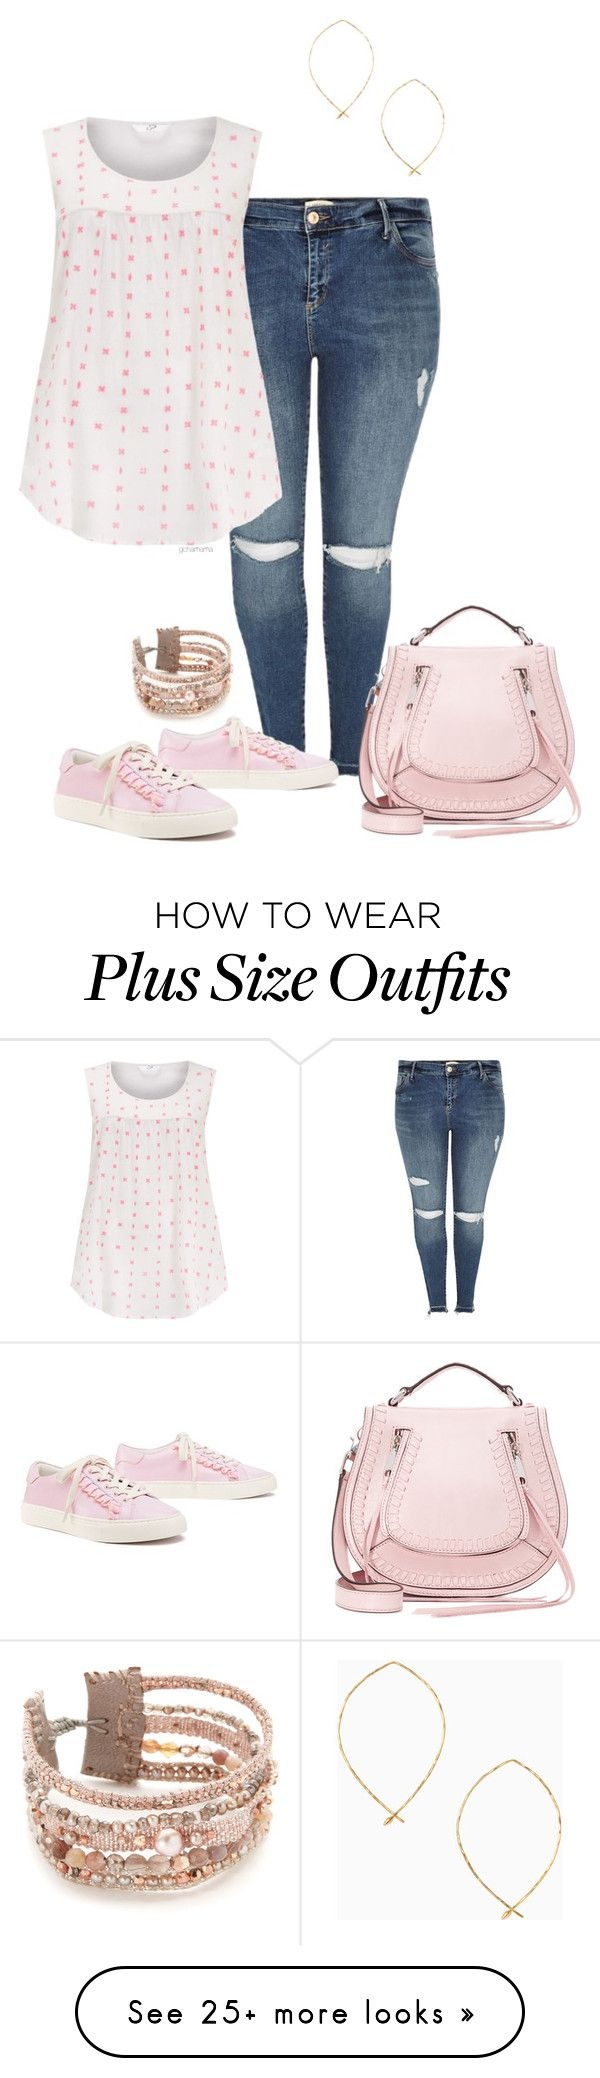 """""""Sweet child- plus size"""" by gchamama on Polyvore featuring River Island, Tory Burch, Rebecca Minkoff, Stella & Dot and Chan Luu"""